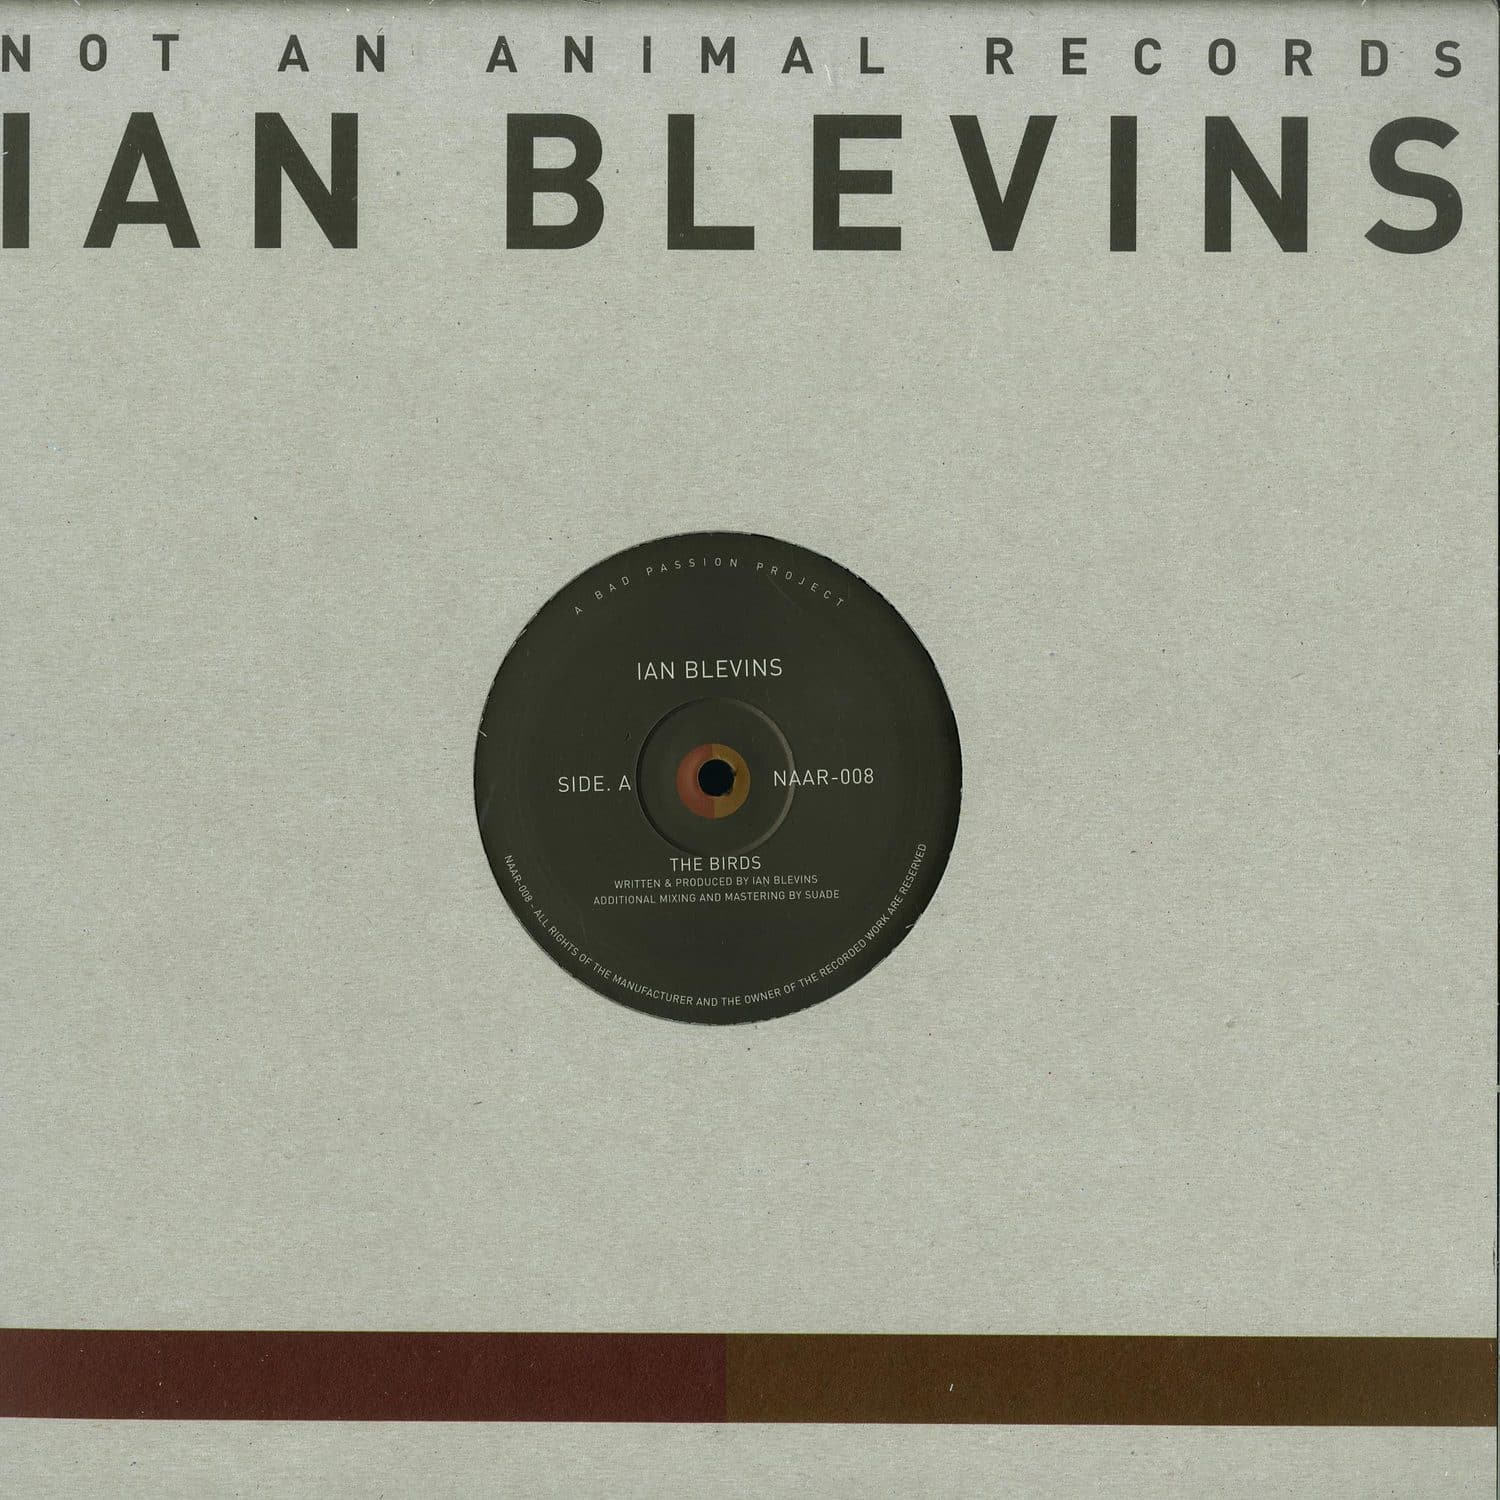 Ian Blevins - THE BIRDS